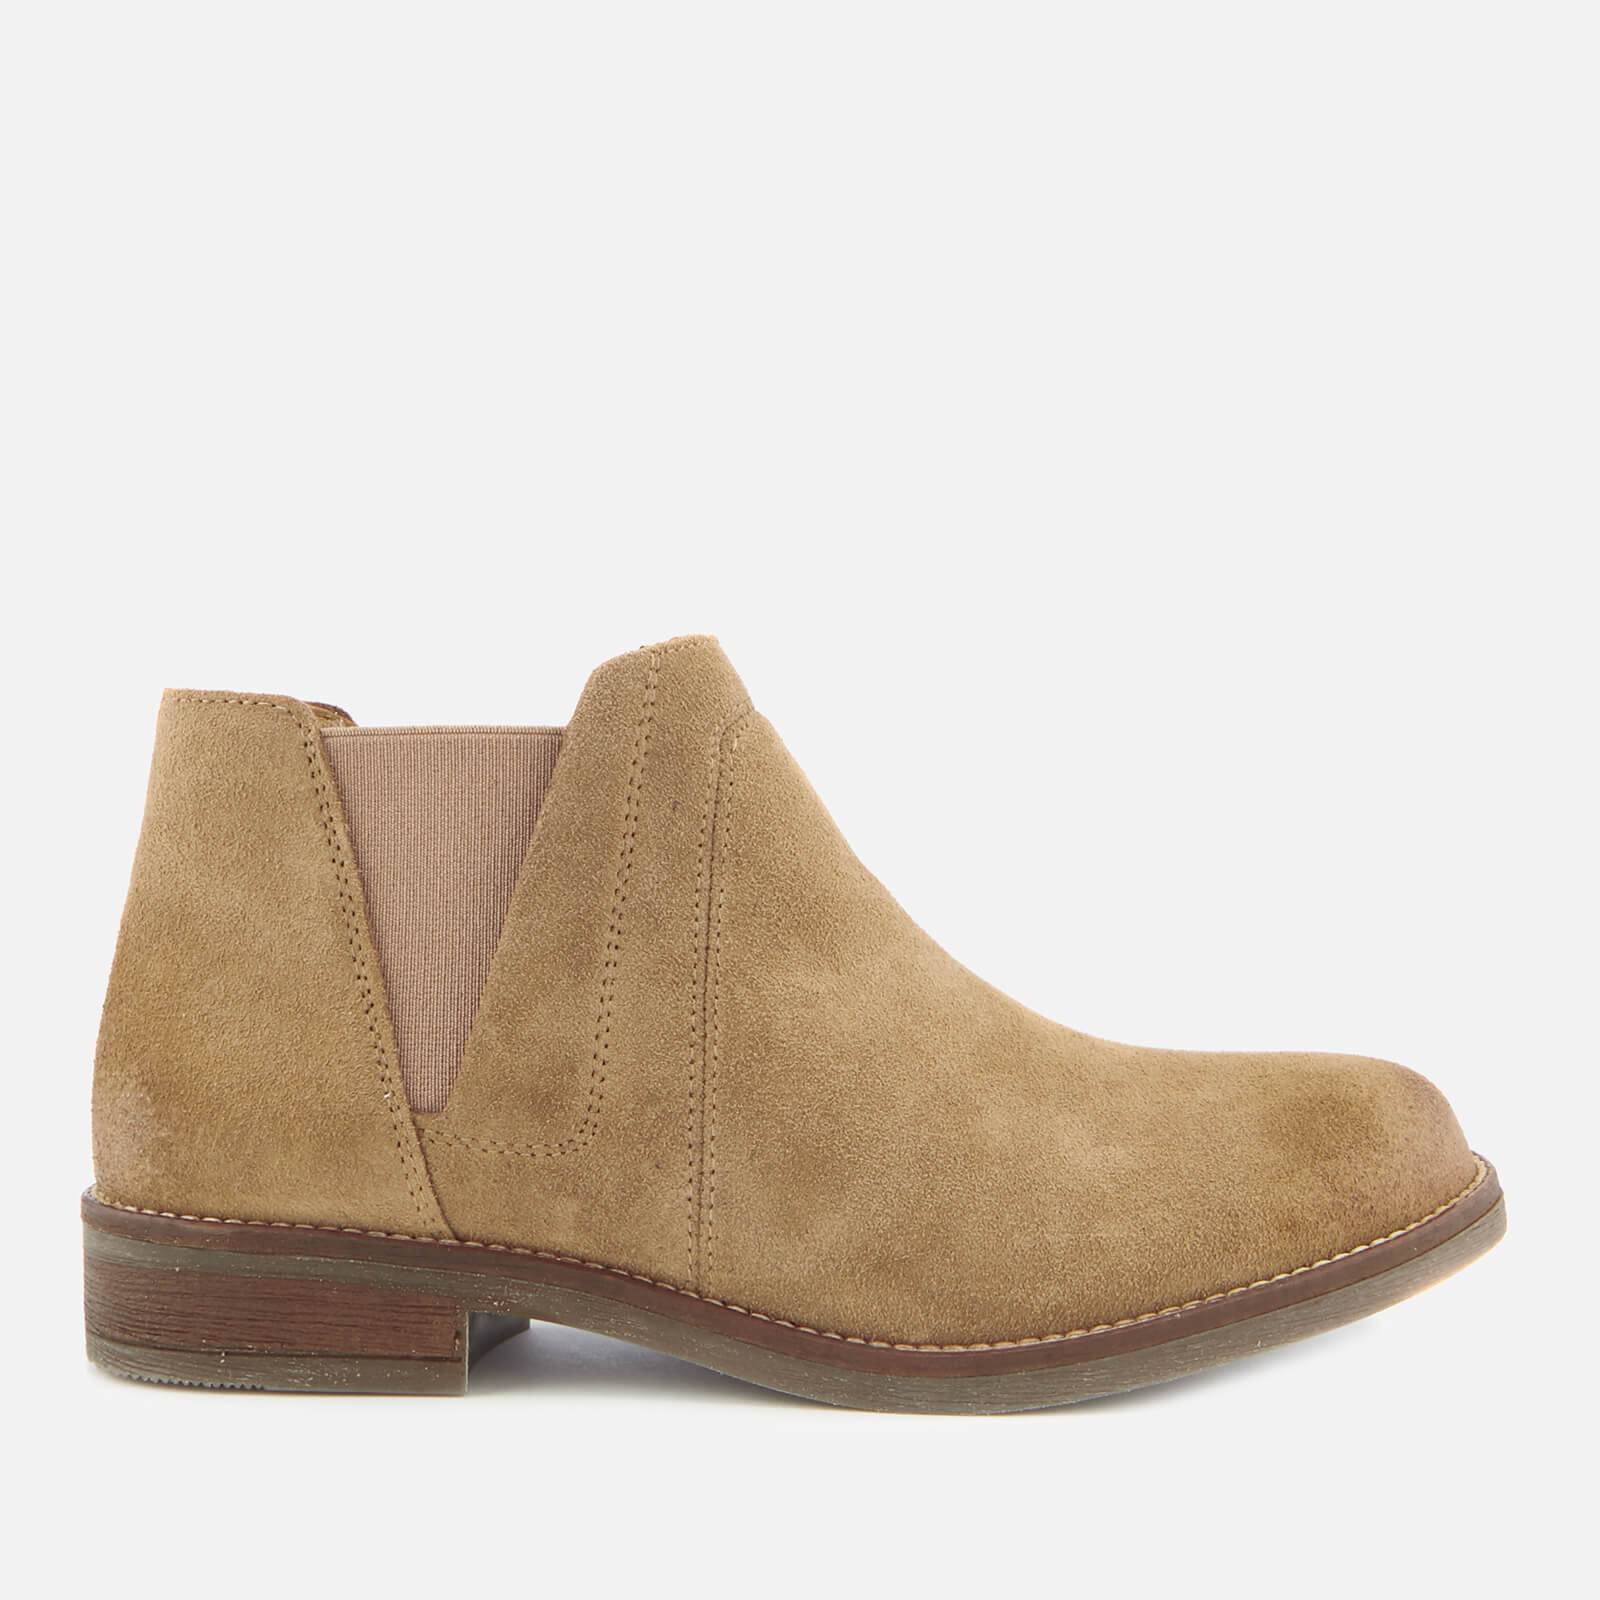 Clarks Women's Demi Beat Suede Ankle Boots - Sand - UK 8 - Beige